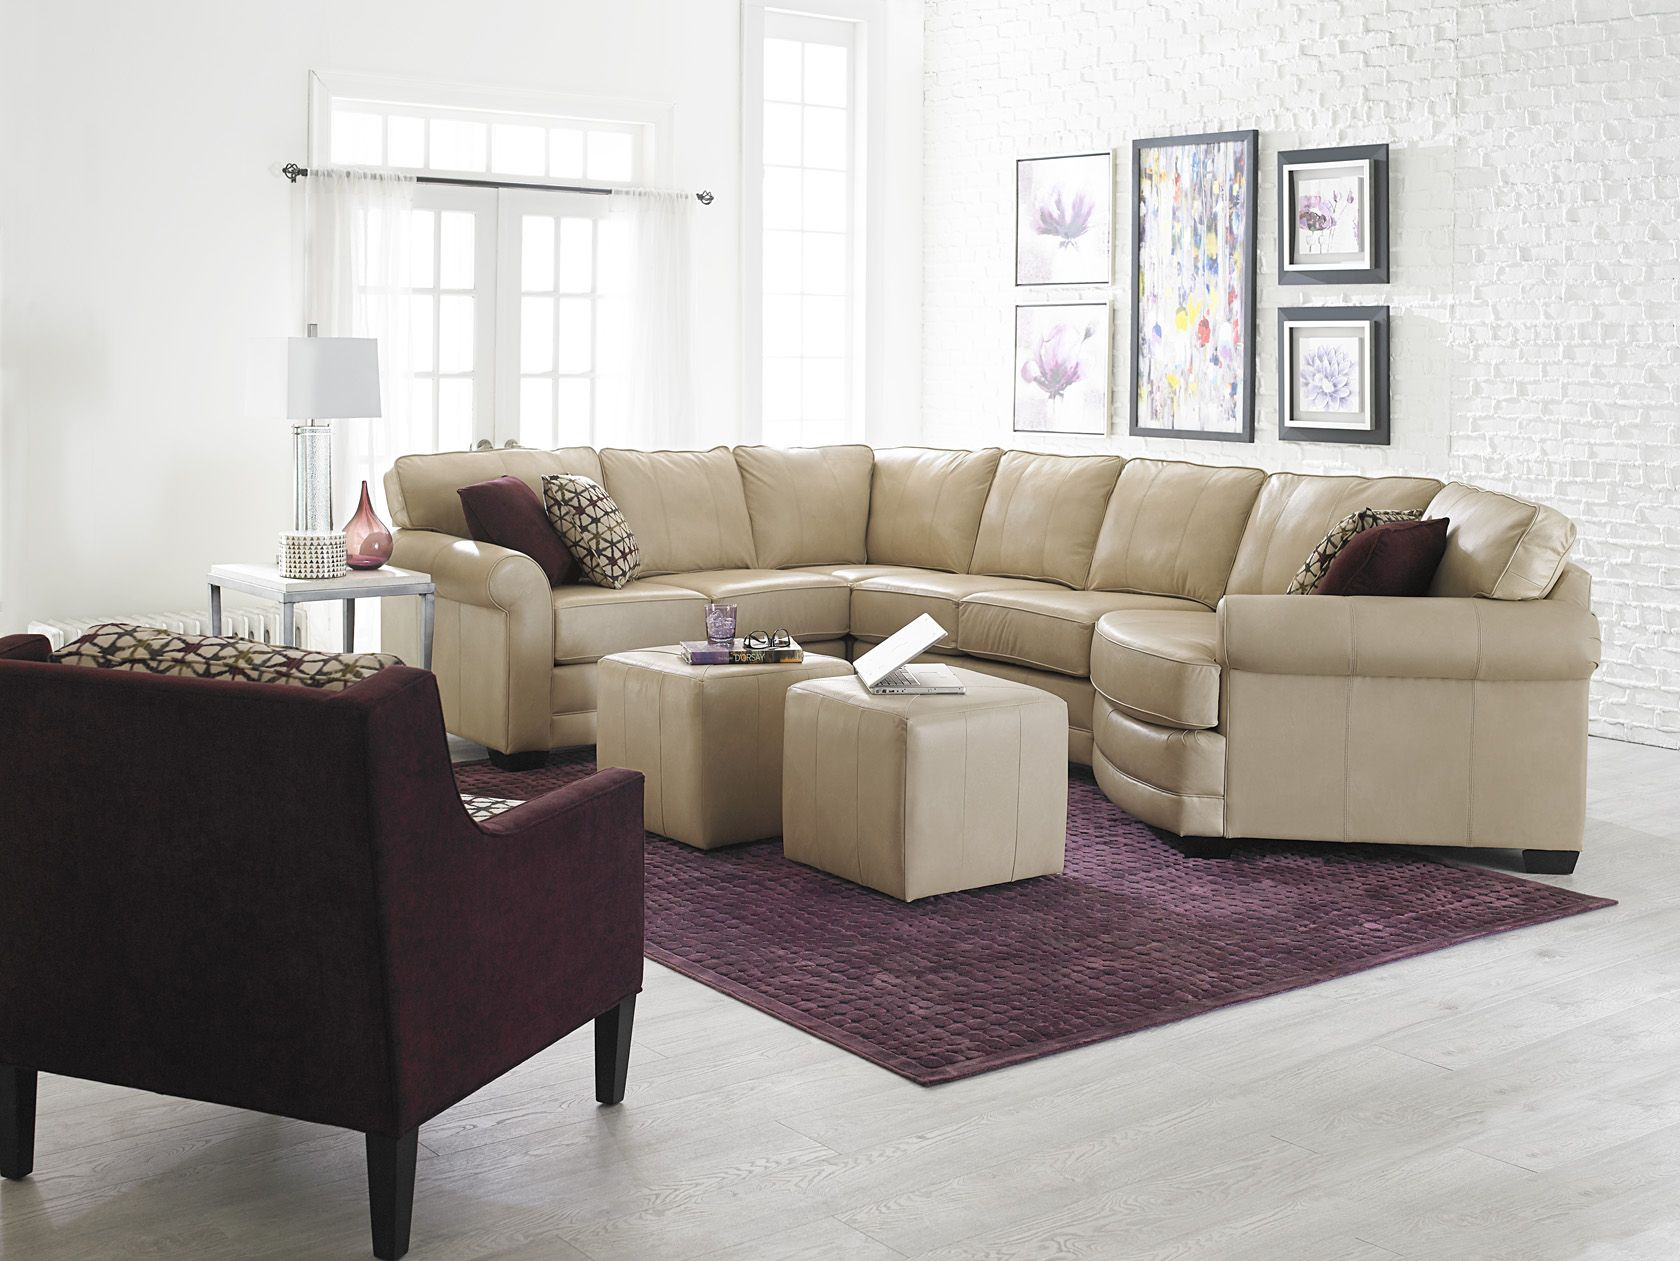 England Brantley 5 Seat Sectional Sofa with Cuddler Pilgrim